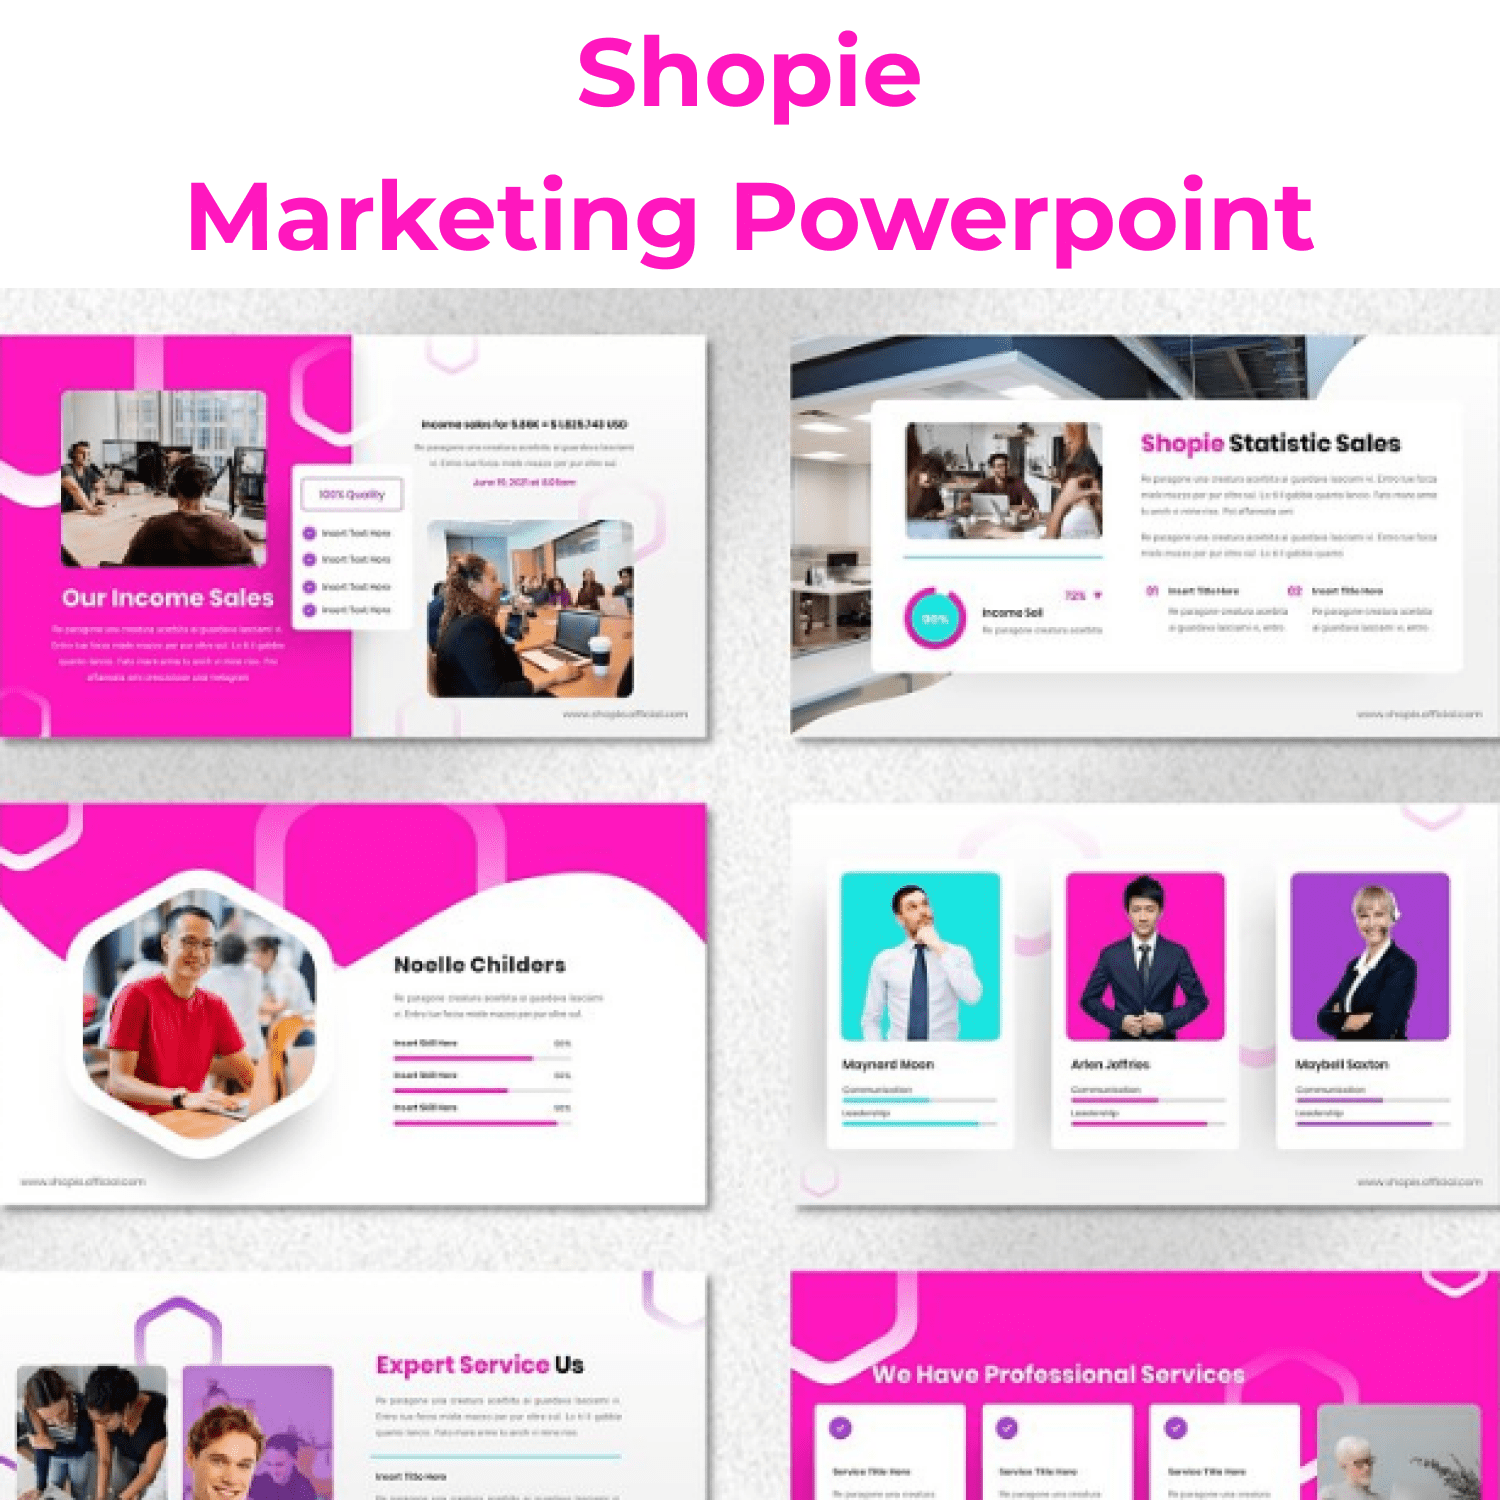 Shopie - Marketing Powerpoint main cover.